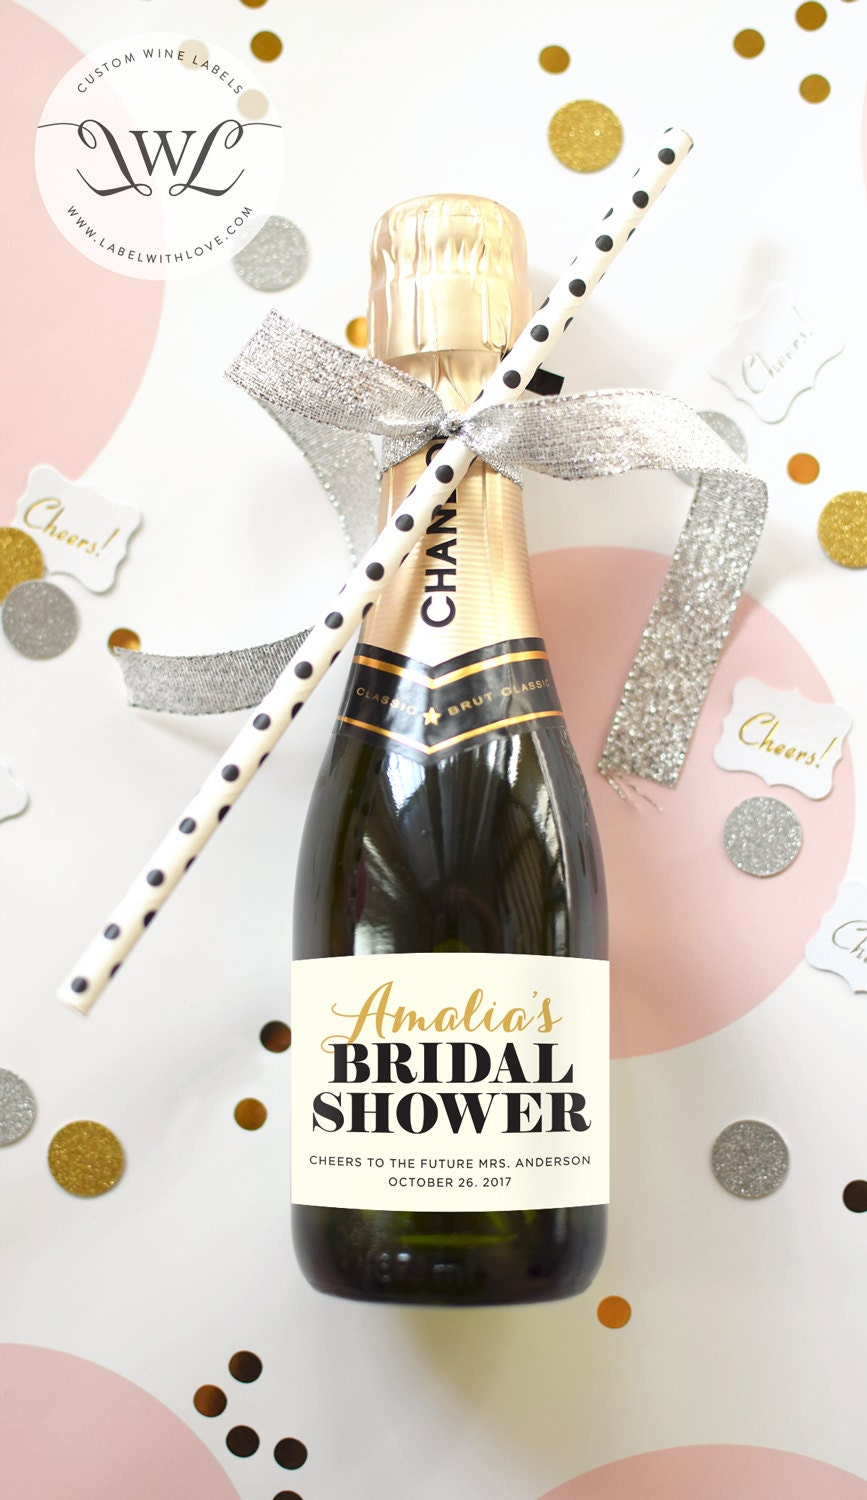 Custom Bridal Shower Mini Champagne Bottle Labels